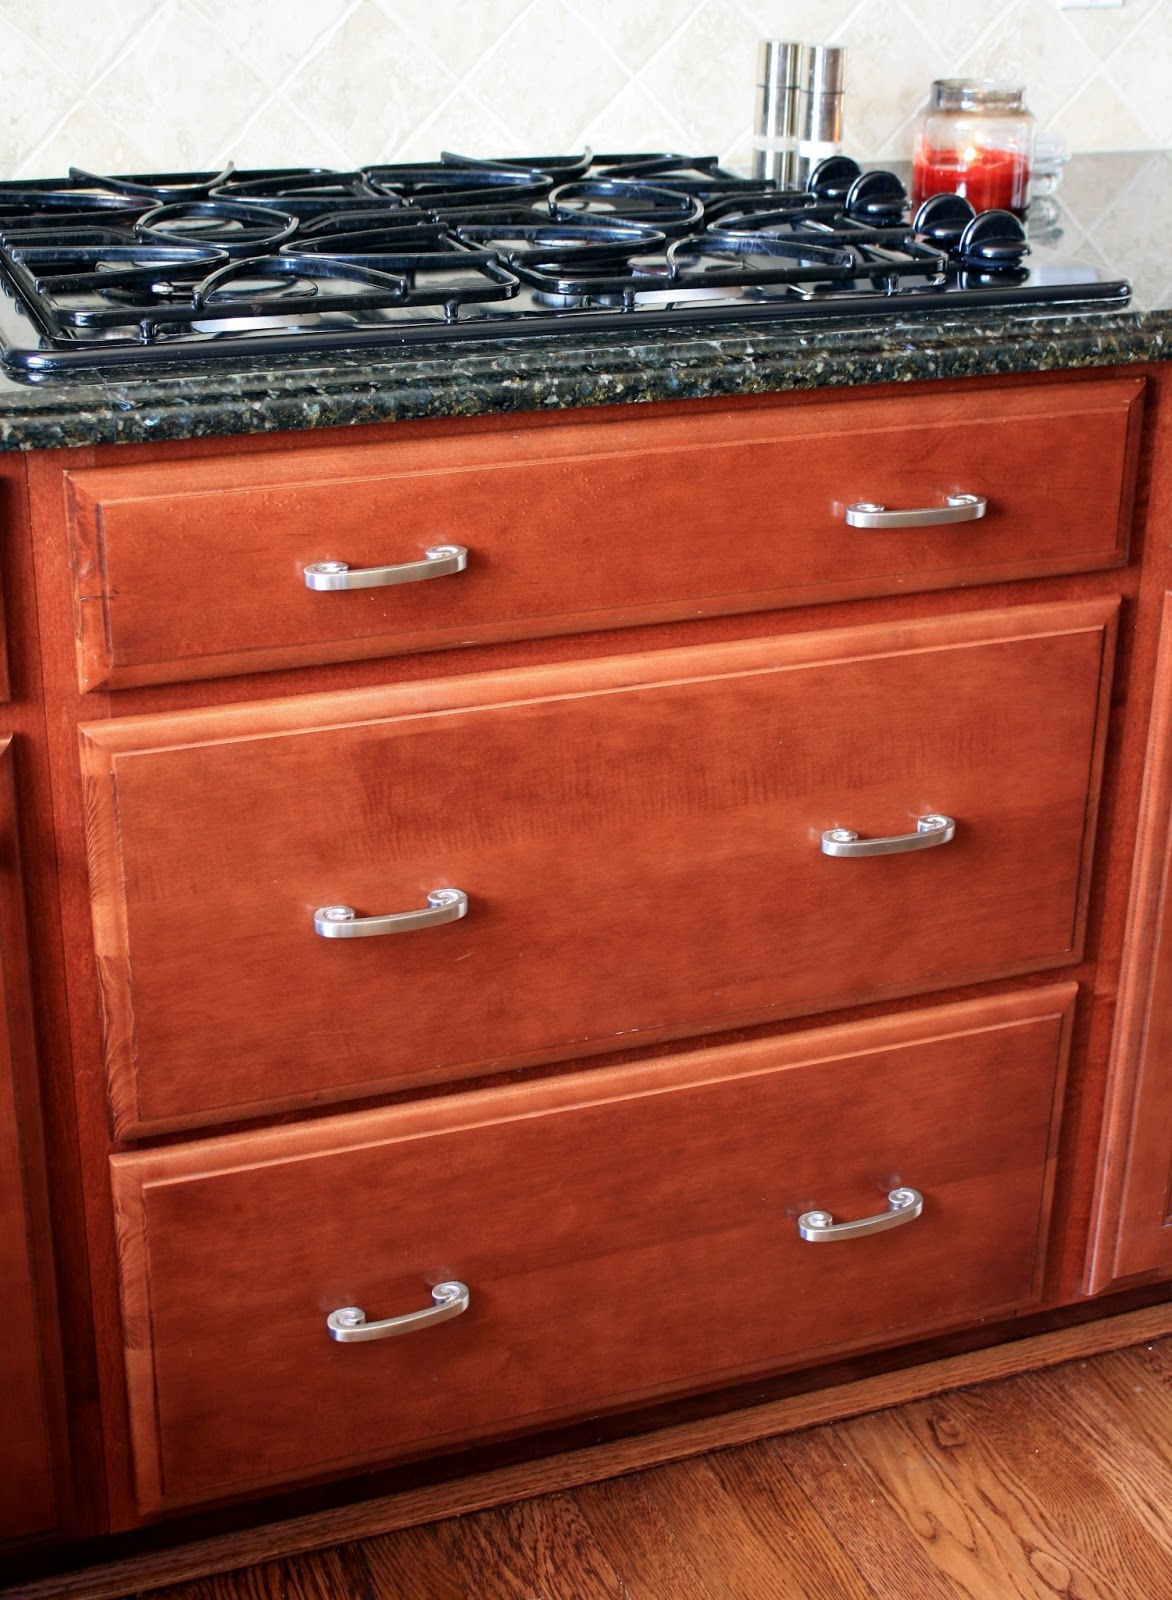 Kitchen Pots and Pans Drawer Cabinets